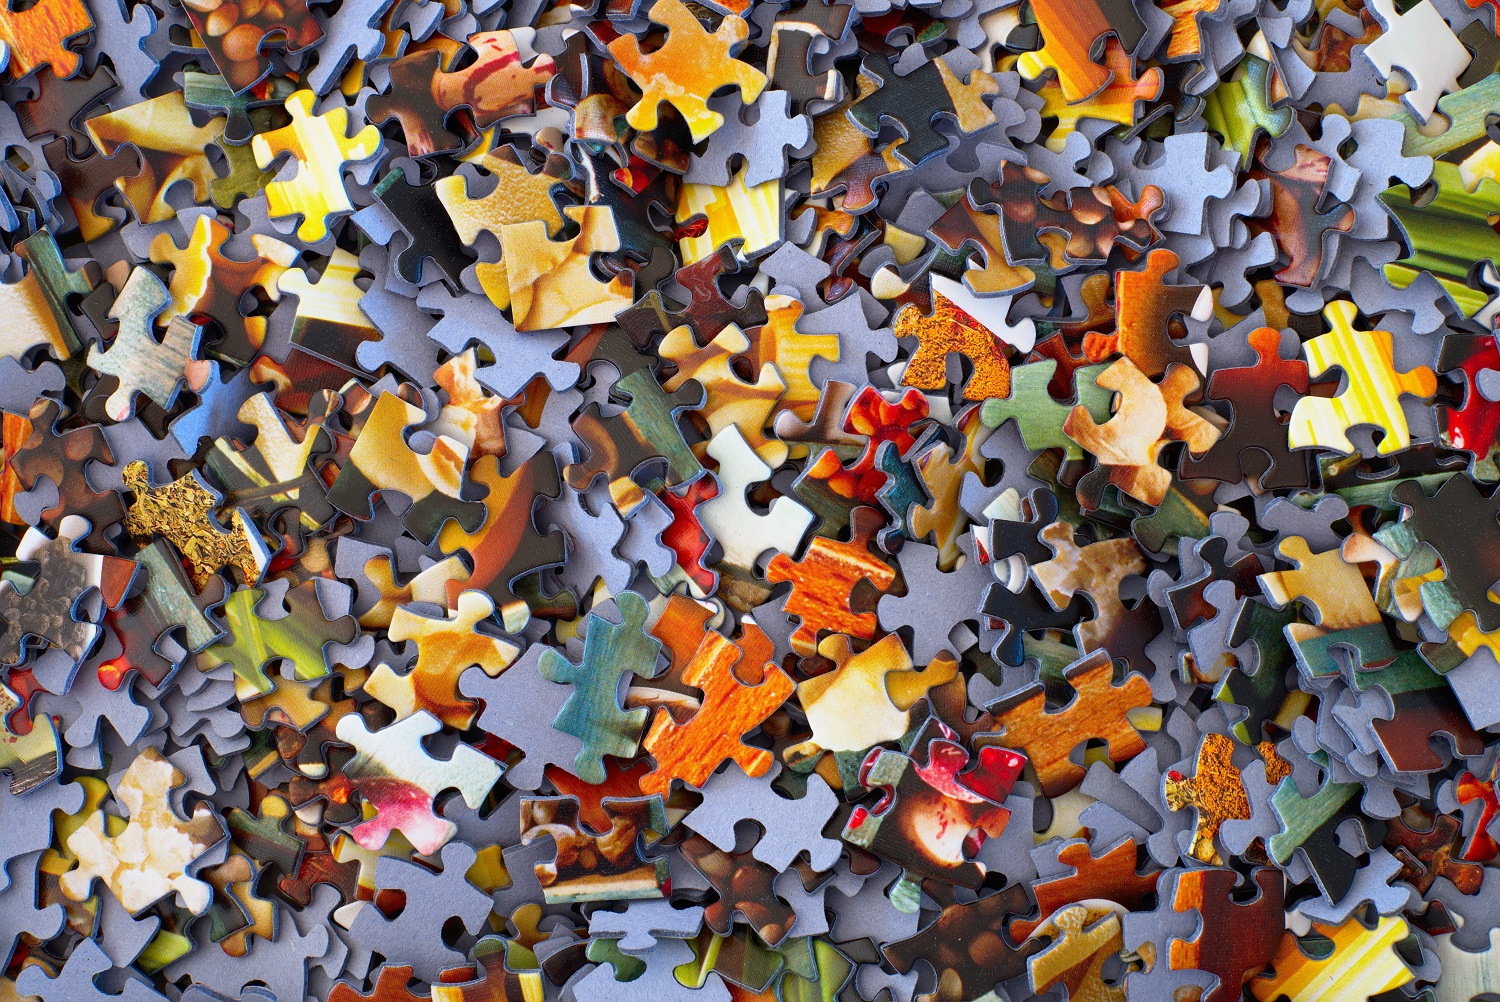 Closeup image of hundreds of puzzle pieces thrown on top of one another some right side up some upside down.